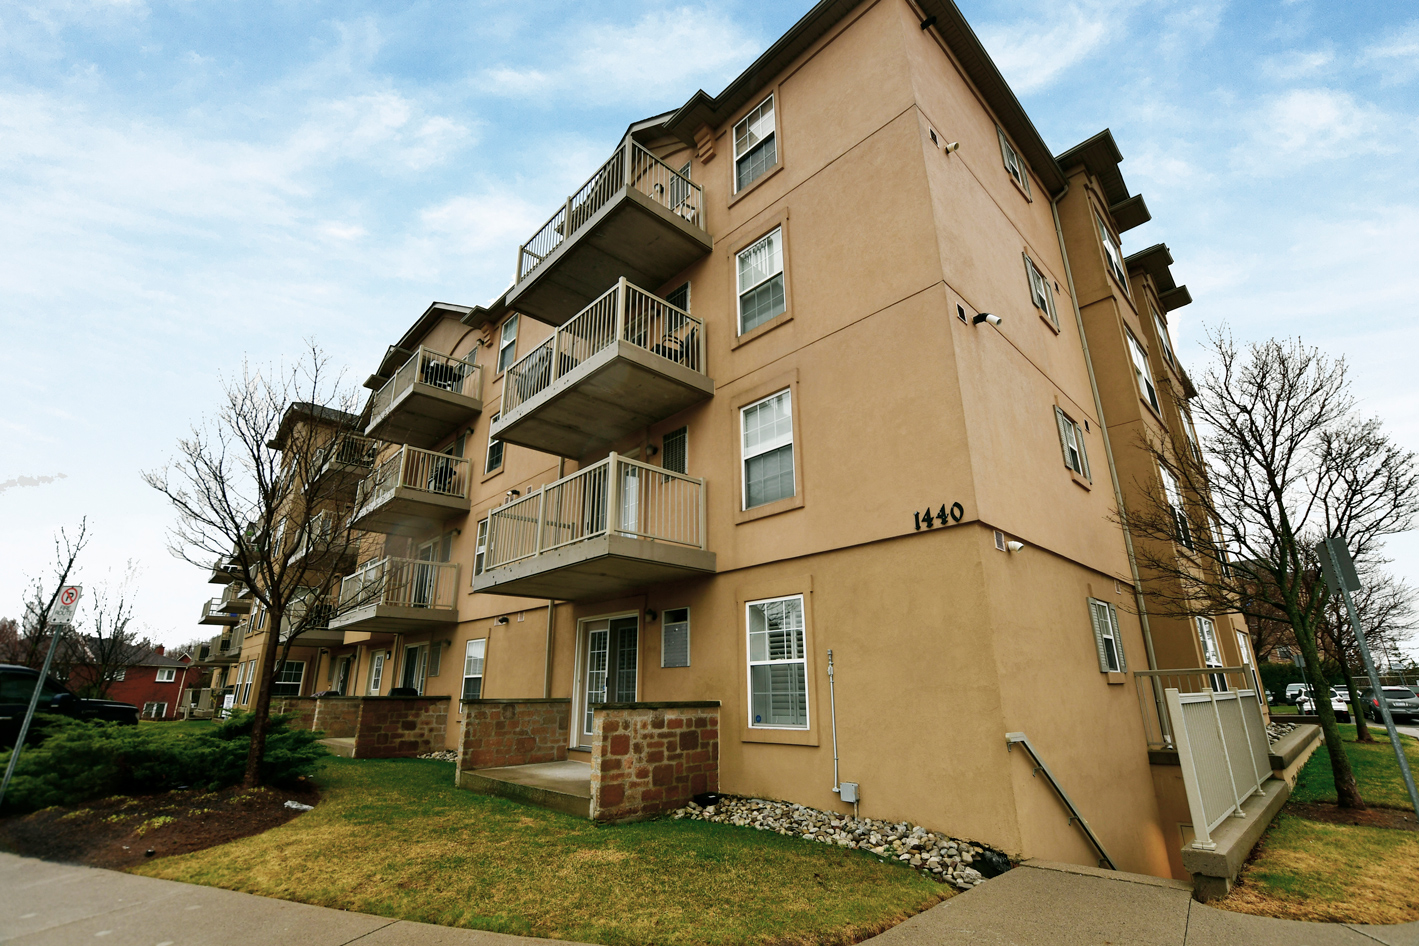 1440 Bishops Gate Unit 208 For Sale by New Street Realty Team - newstreet.ca